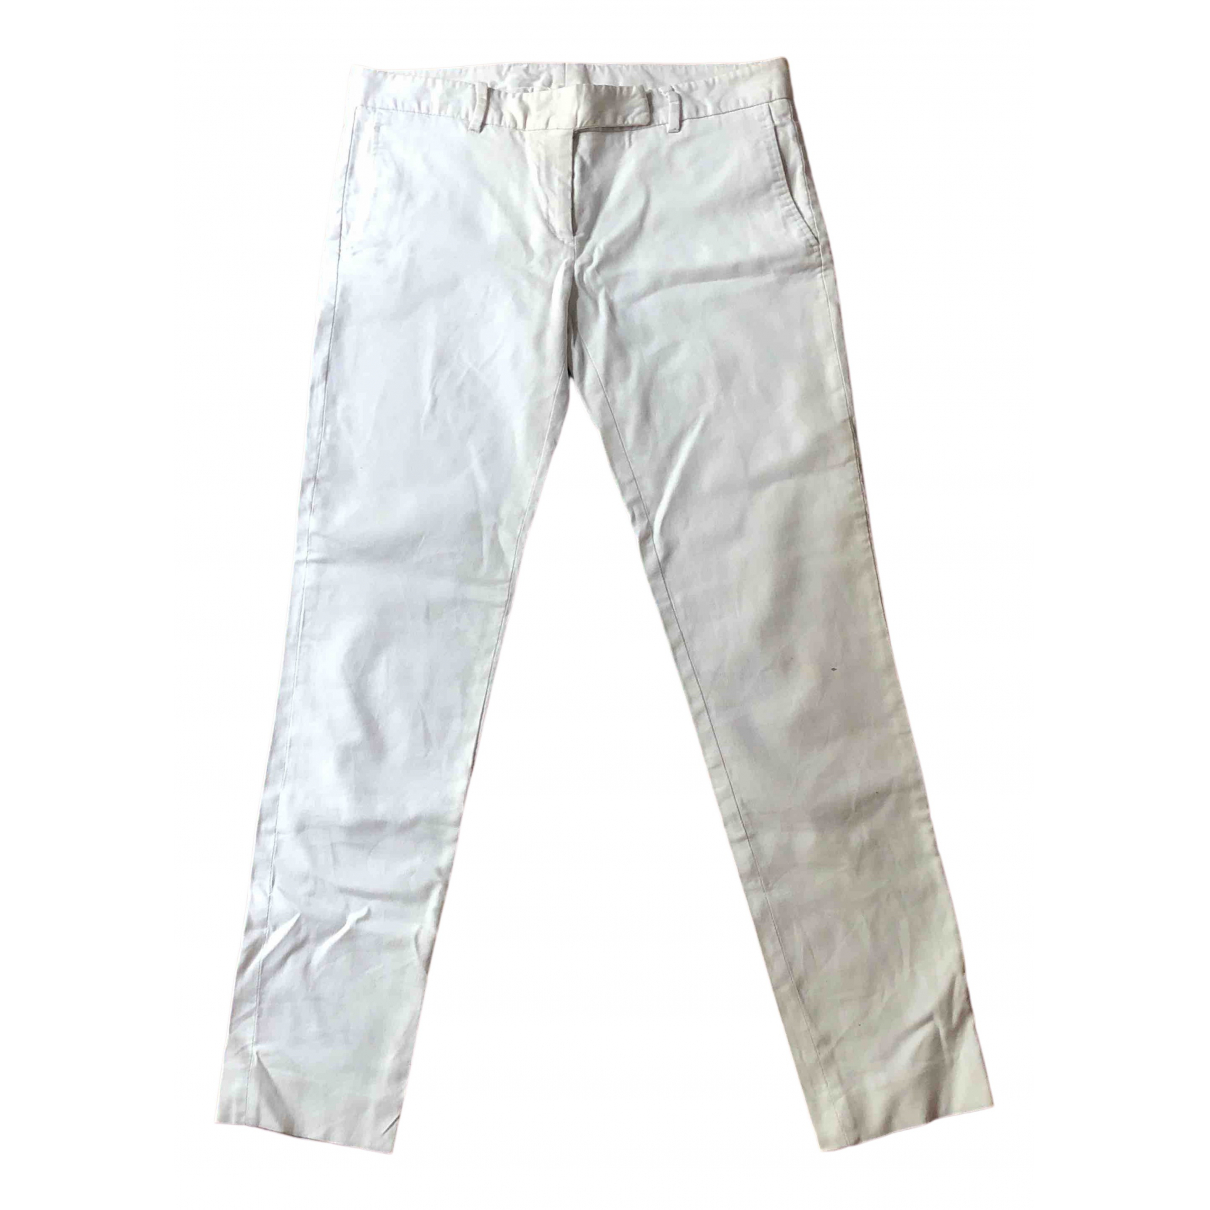 Mauro Grifoni \N White Cotton Trousers for Women 40 IT